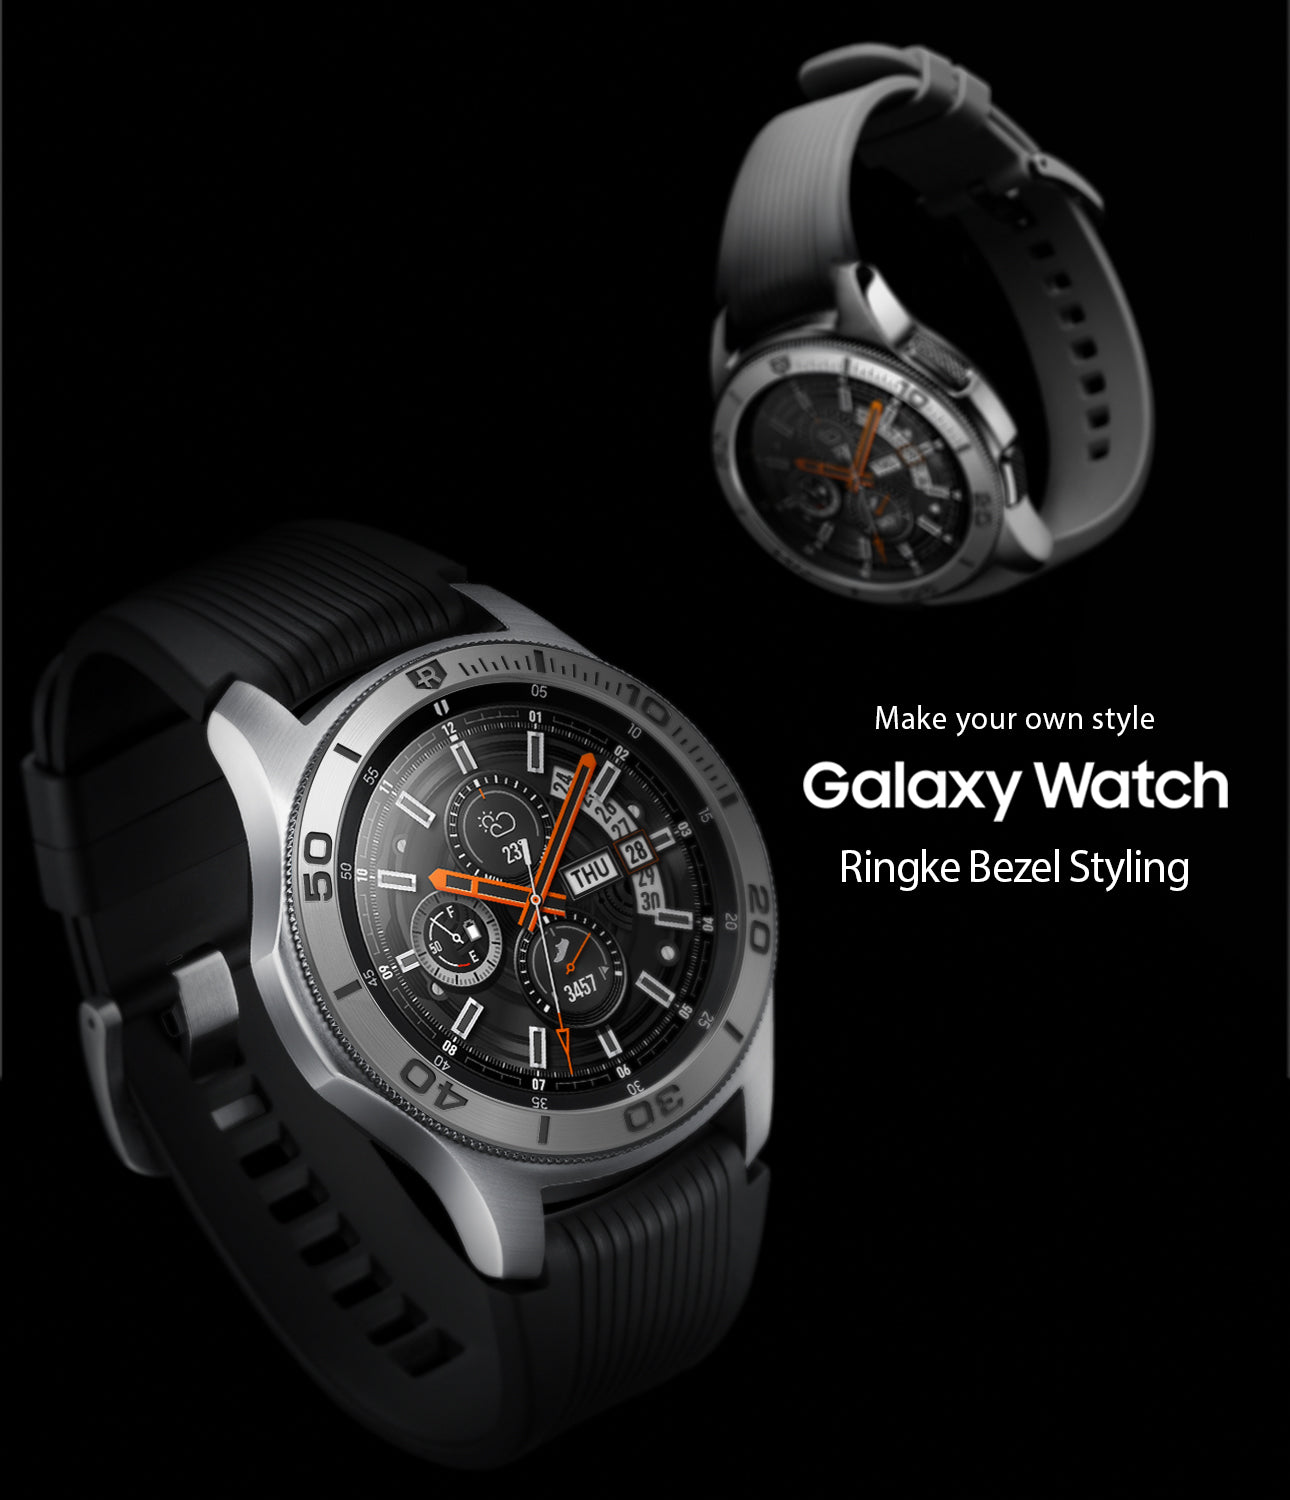 ringke bezel styling case cover designed for galaxy watch 46mm, gear s3 frontier and classic